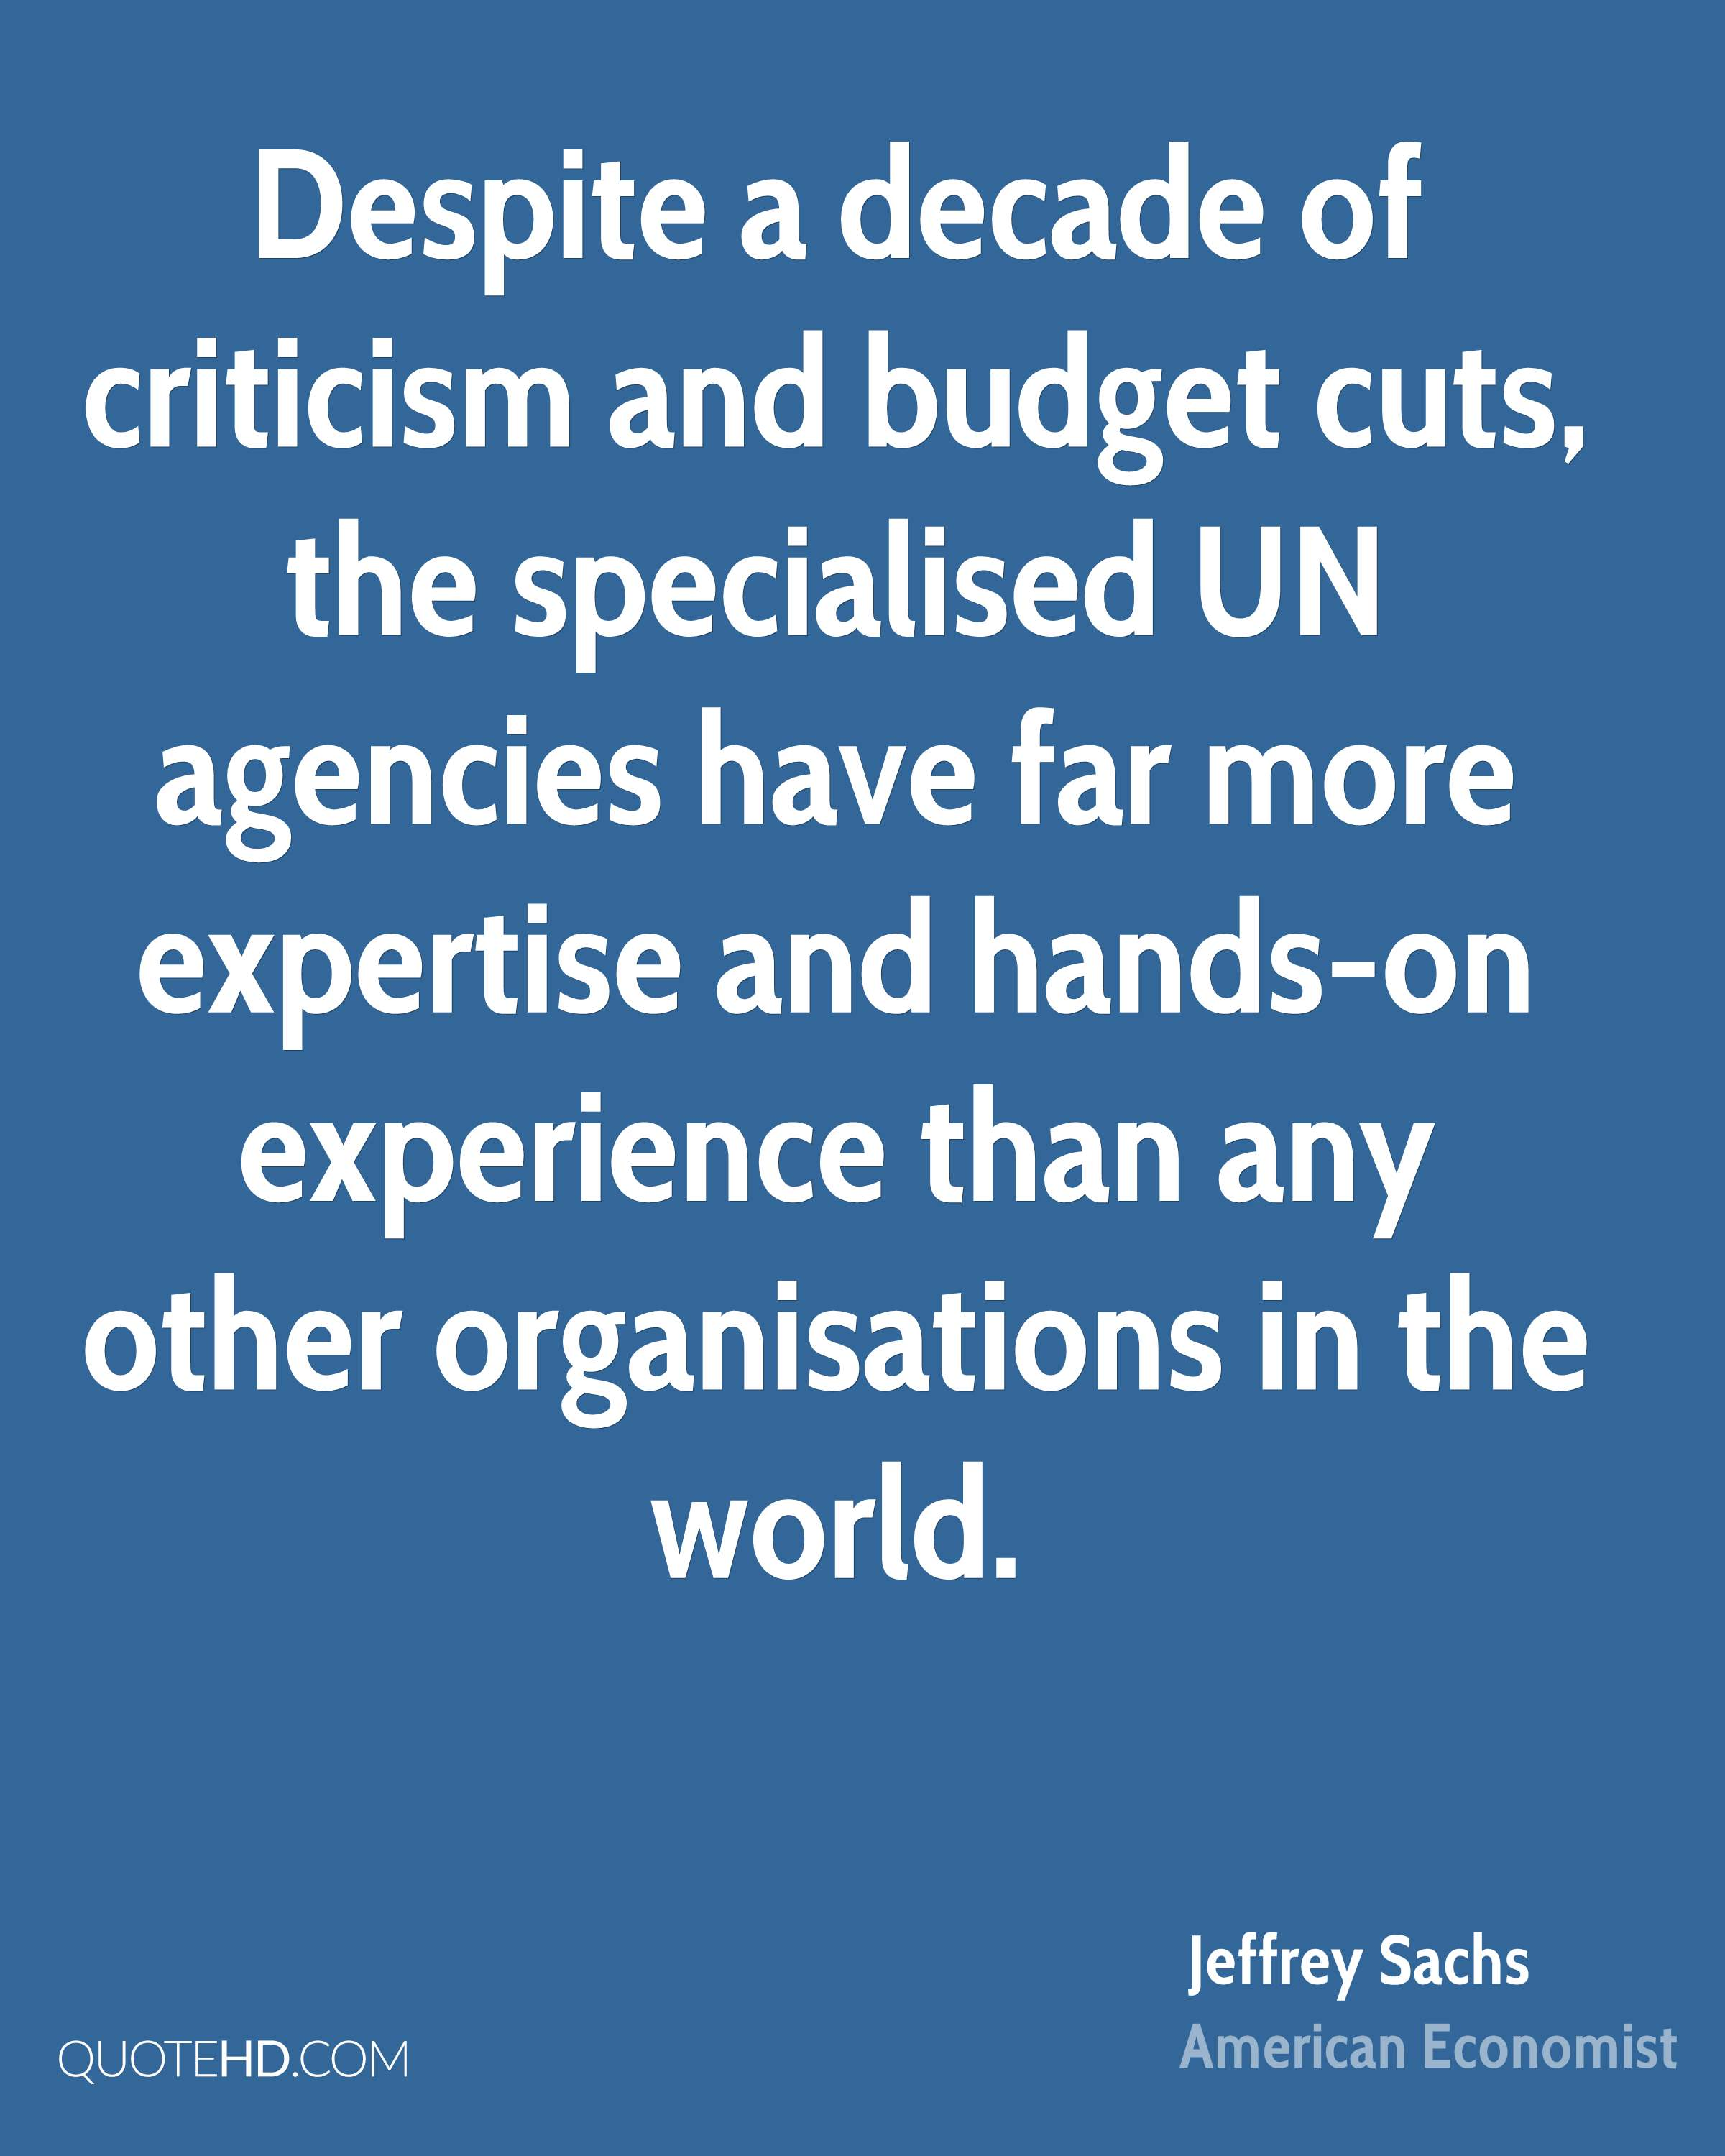 Despite a decade of criticism and budget cuts, the specialised UN agencies have far more expertise and hands-on experience than any other organisations in the world.